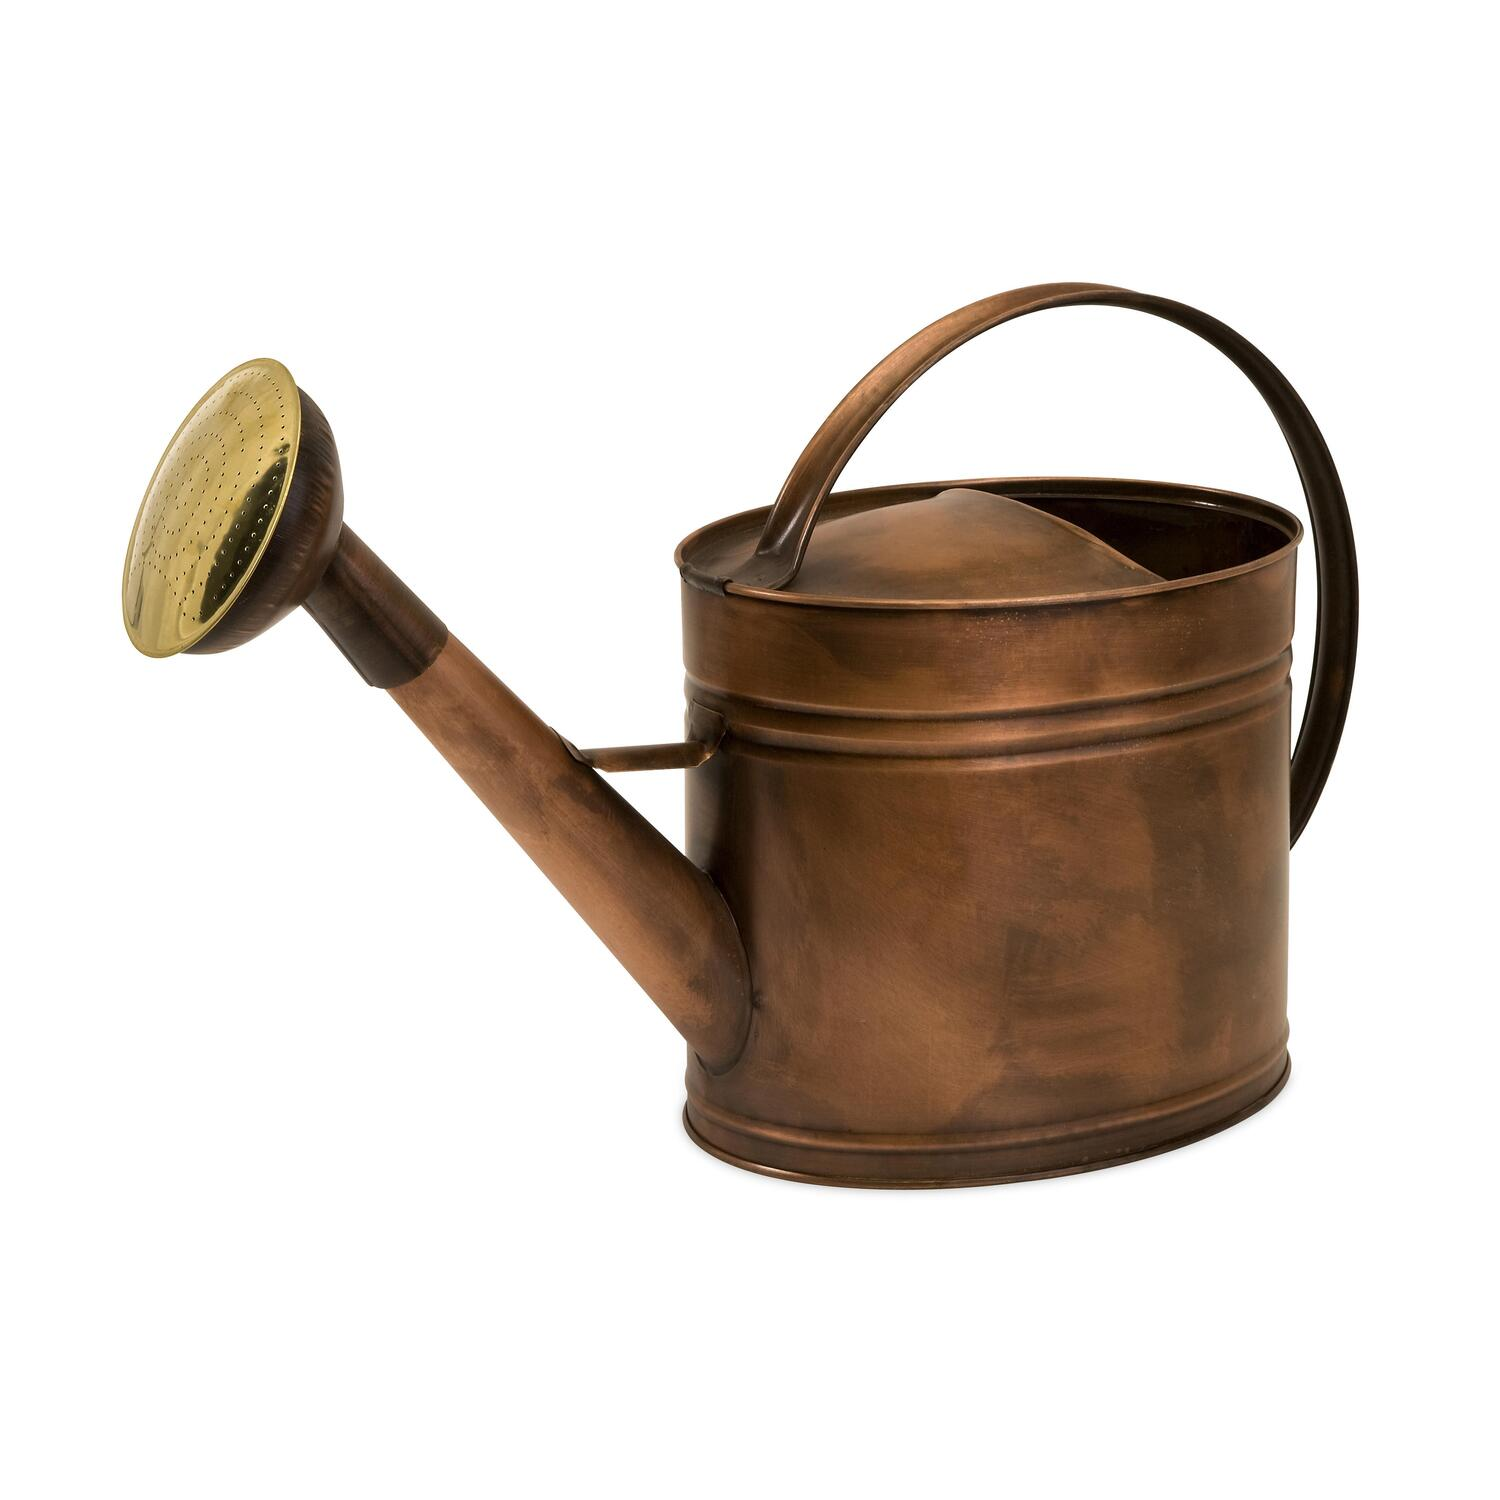 Imak tauba large oval copper watering can by oj commerce 44088 102